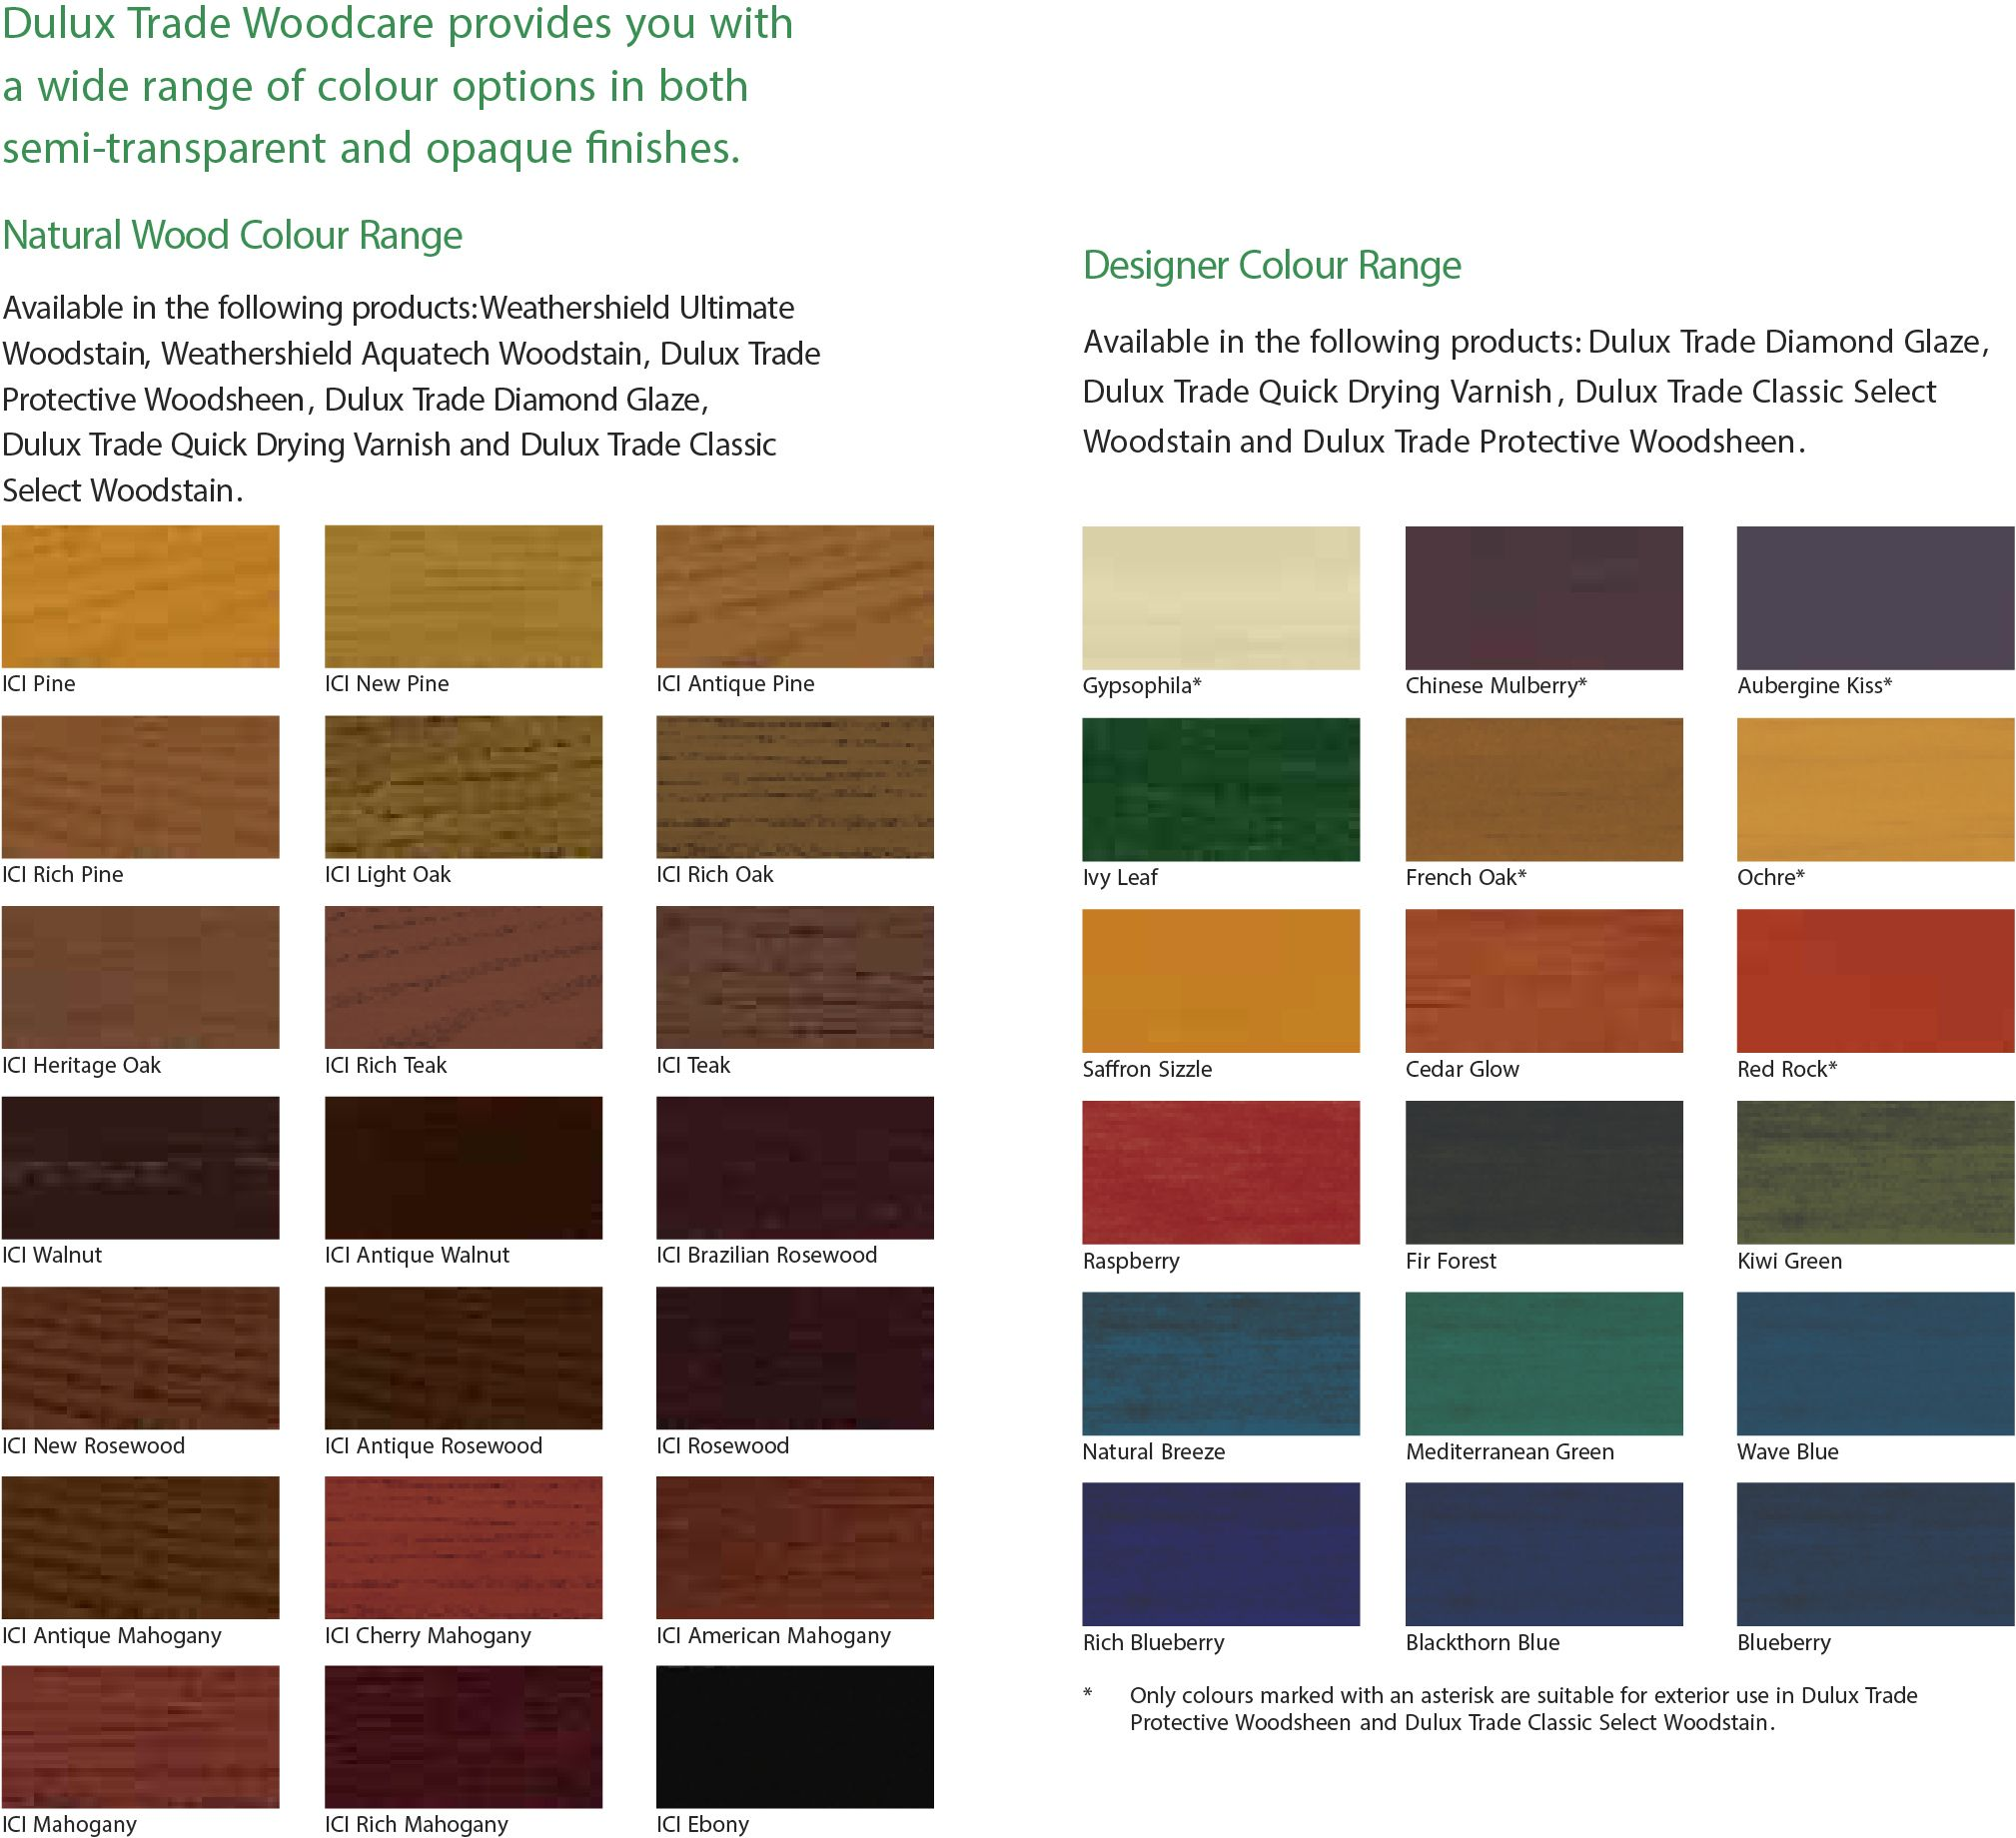 Dulux Trade Woodcare Translucent Colour Chart Dulux Colour Chart 2015 Paint Color Chart Wood Stain Colors Staining Wood